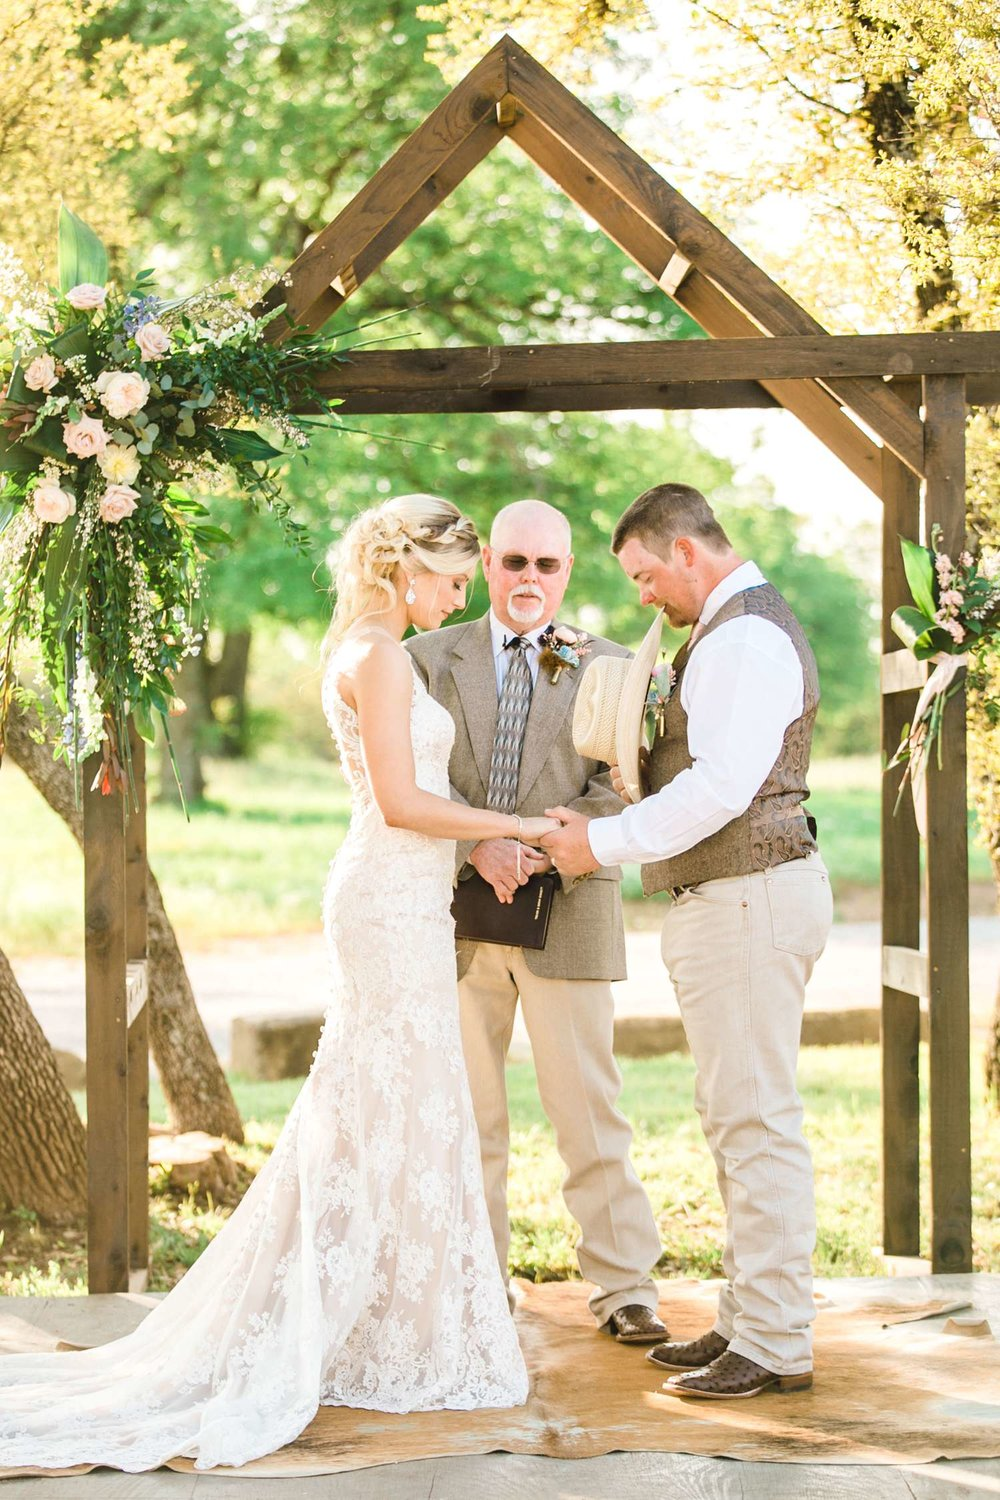 SARAH+TREVOR+BADGETT+SPARROW+CREEK+GRAHAM+TEXAS+ALLEEJ+WEDDINGS_0076.jpg